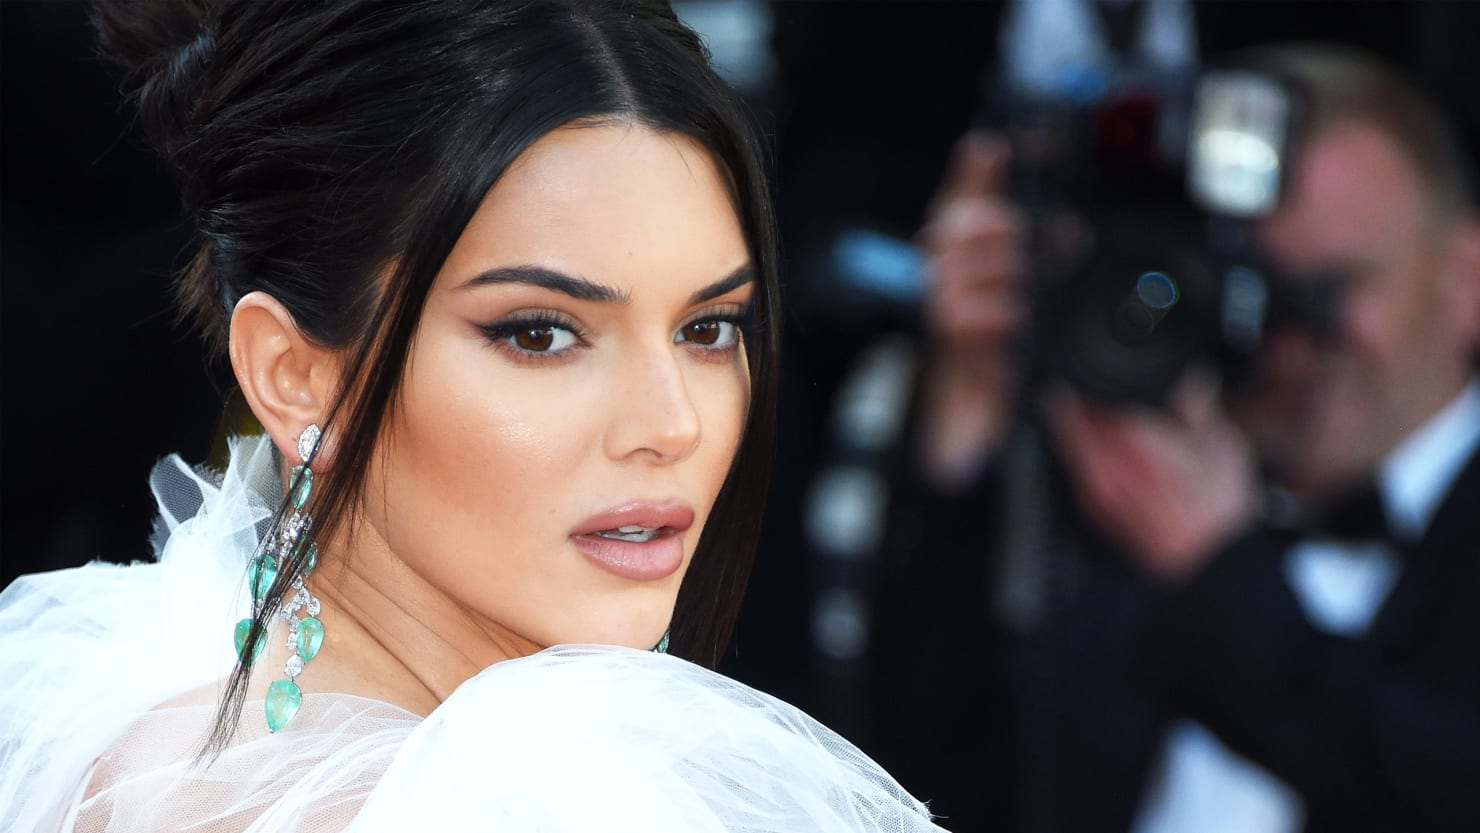 Kendall Jenner says she works just as hard as the original '90s supermodels advise